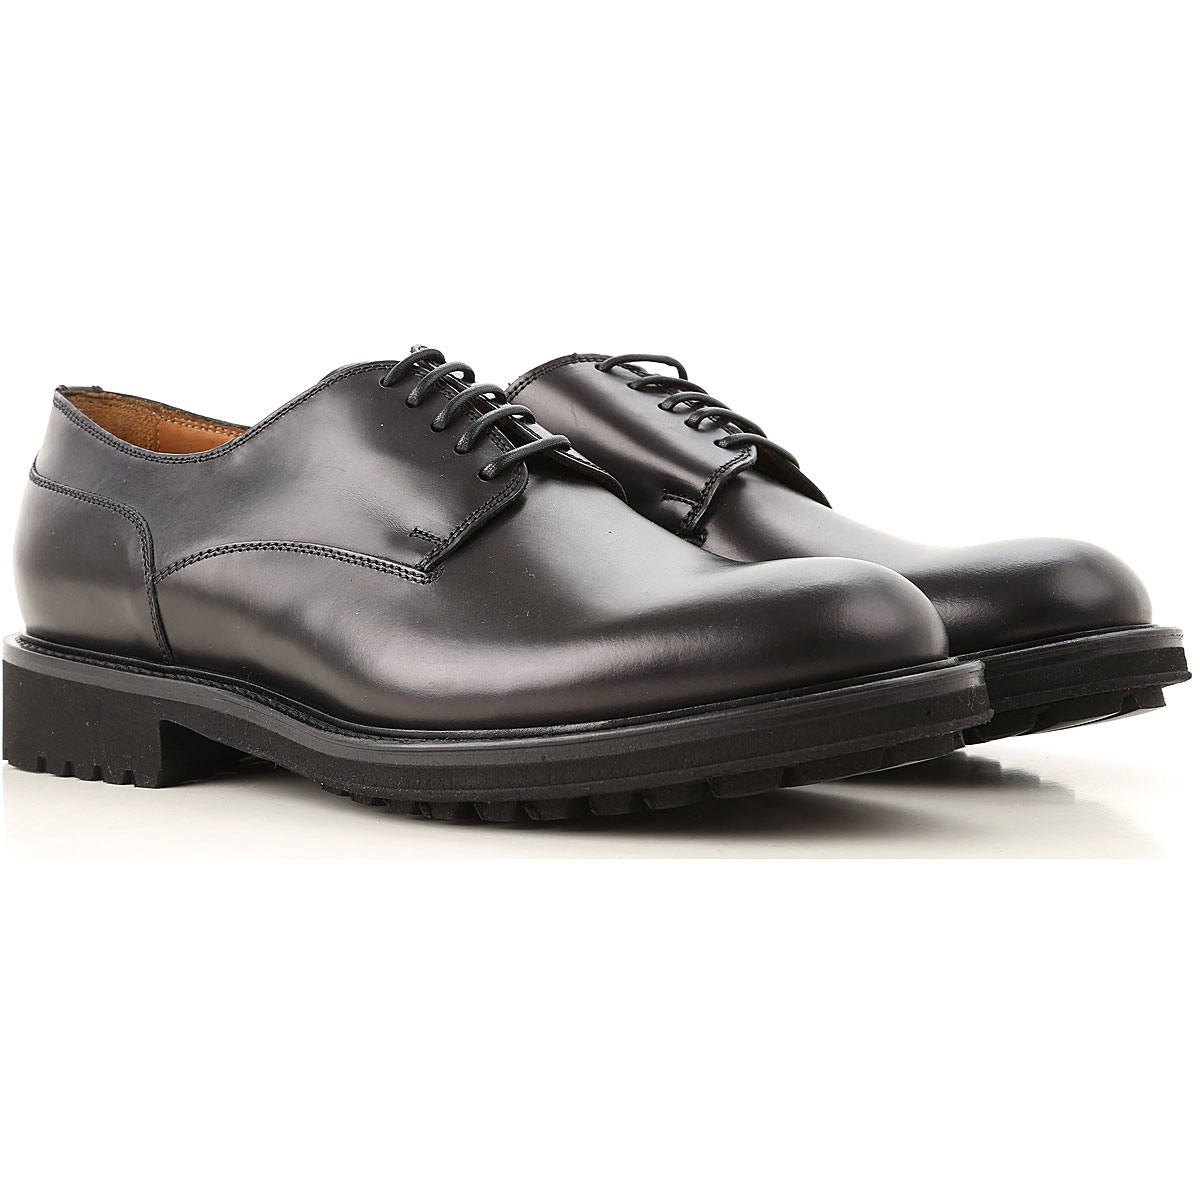 Doucals Lace Up Shoes for Men Oxfords Derbies and Brogues On Sale USA - GOOFASH